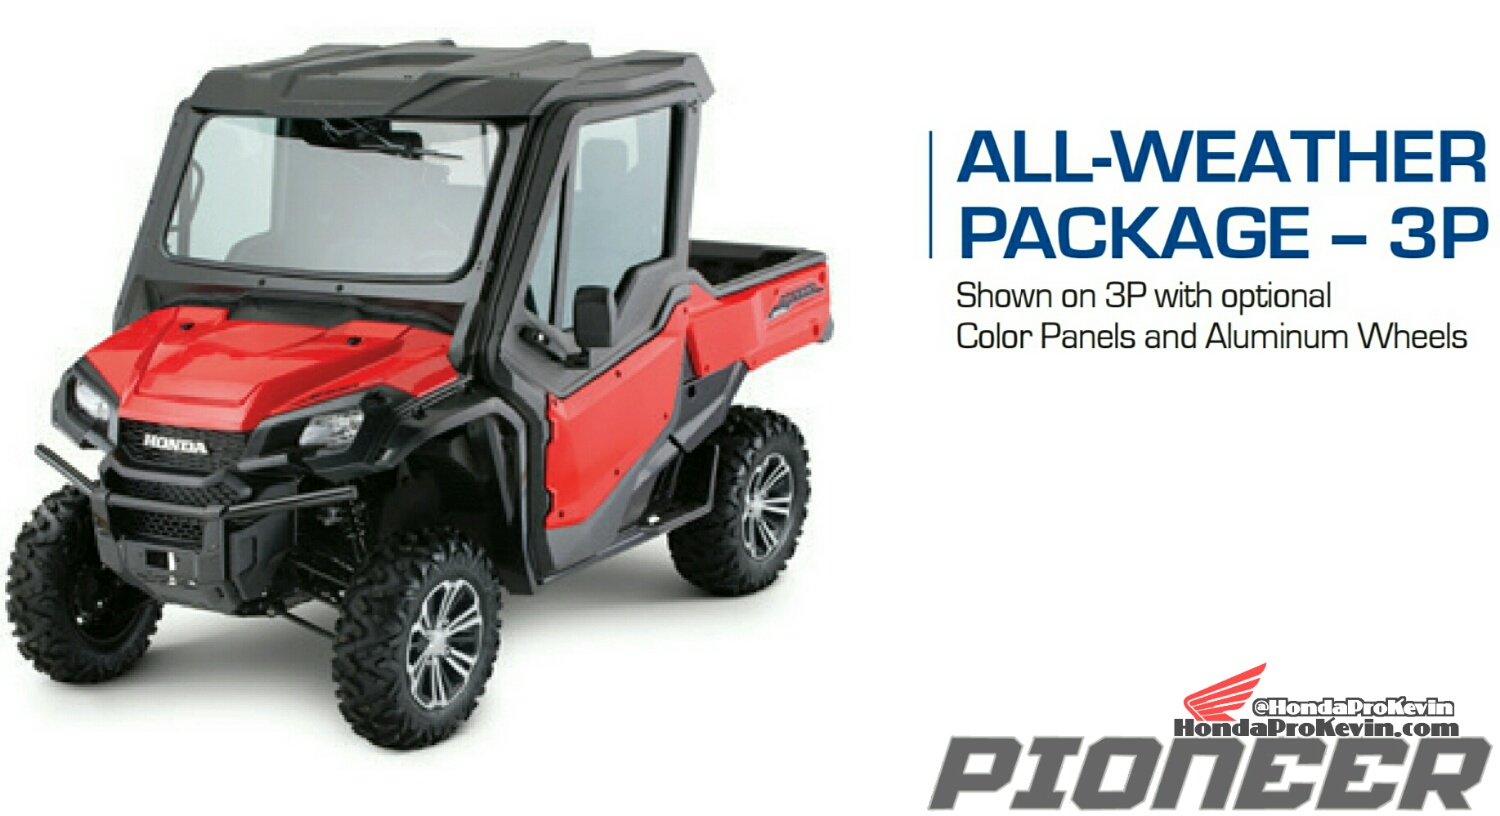 hight resolution of 2018 honda pioneer 1000 all weather package accessories parts sxs utv